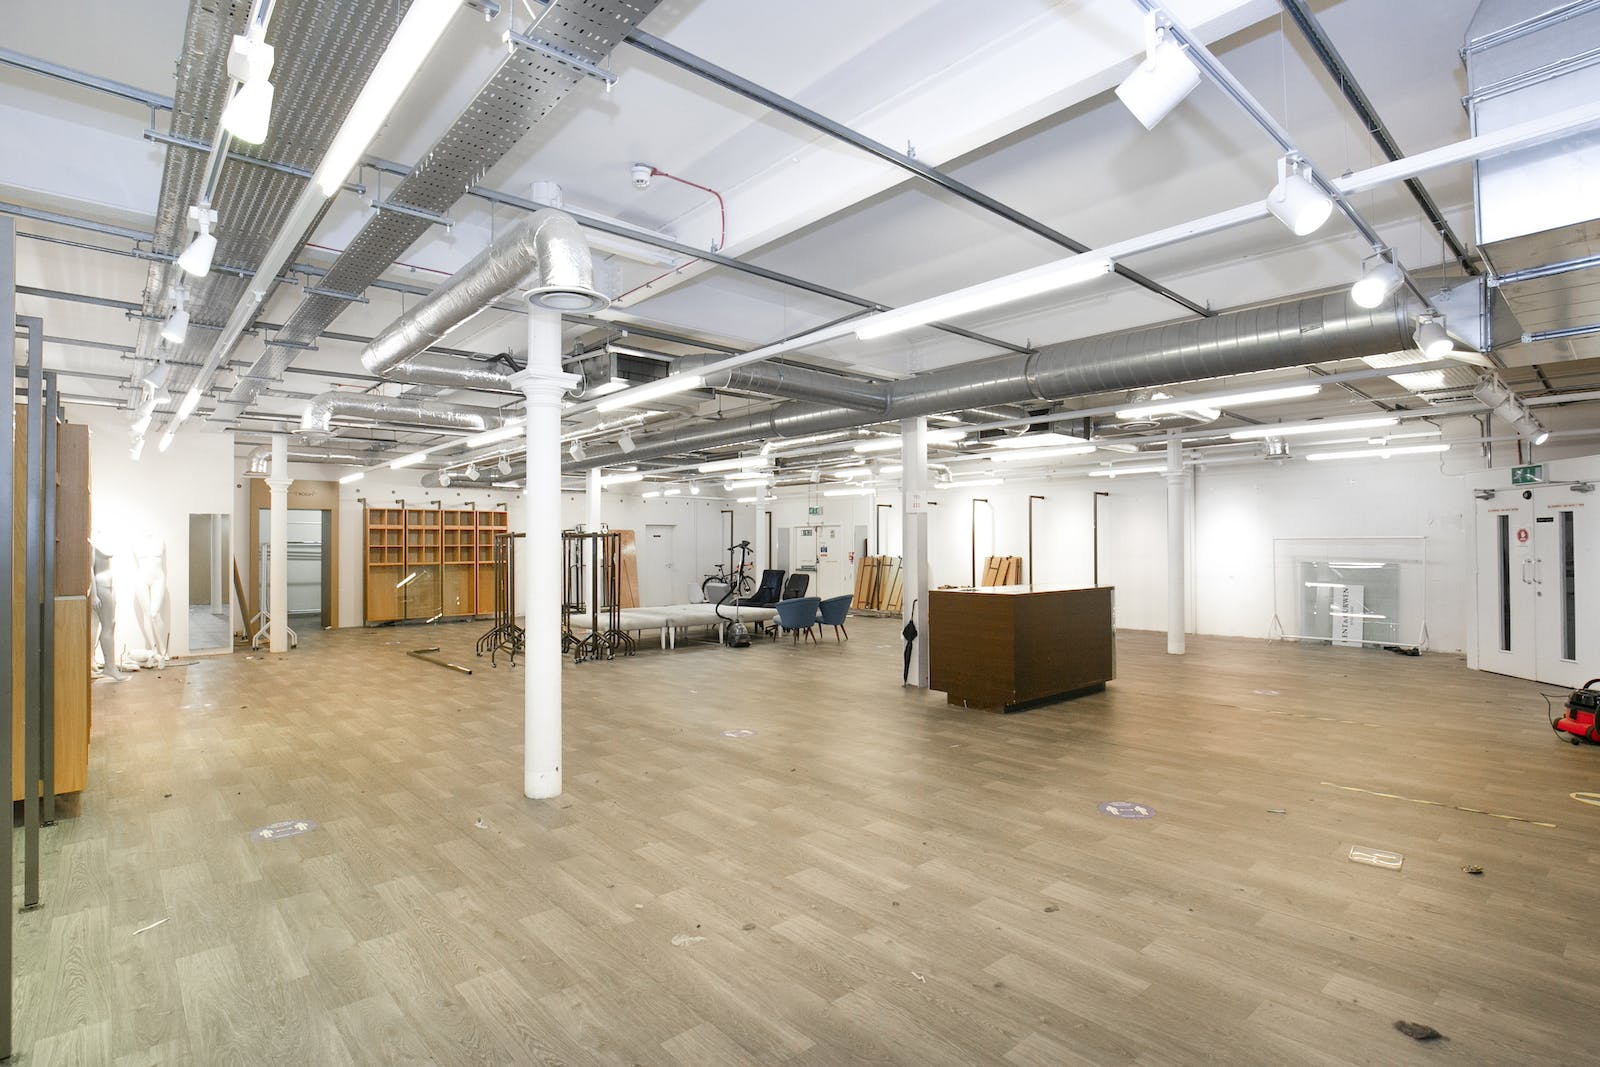 7-9 Chatham Place, London, Office / Industrial / Trade Counter / Retail / Showroom / Leisure / D2 (Assembly and Leisure) To Let - S25C7986.jpg